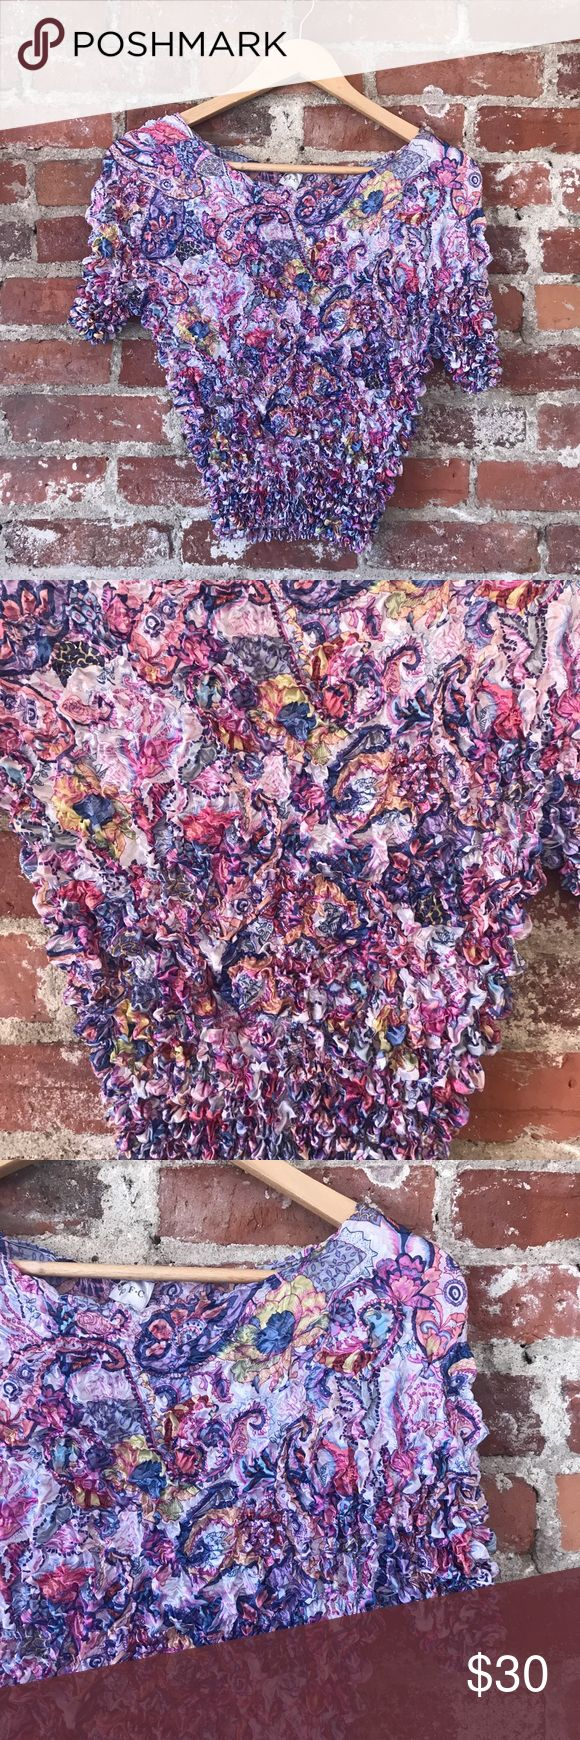 Paisley Y2K Popcorn Shirt NWOT New without tags  Vintage Tops